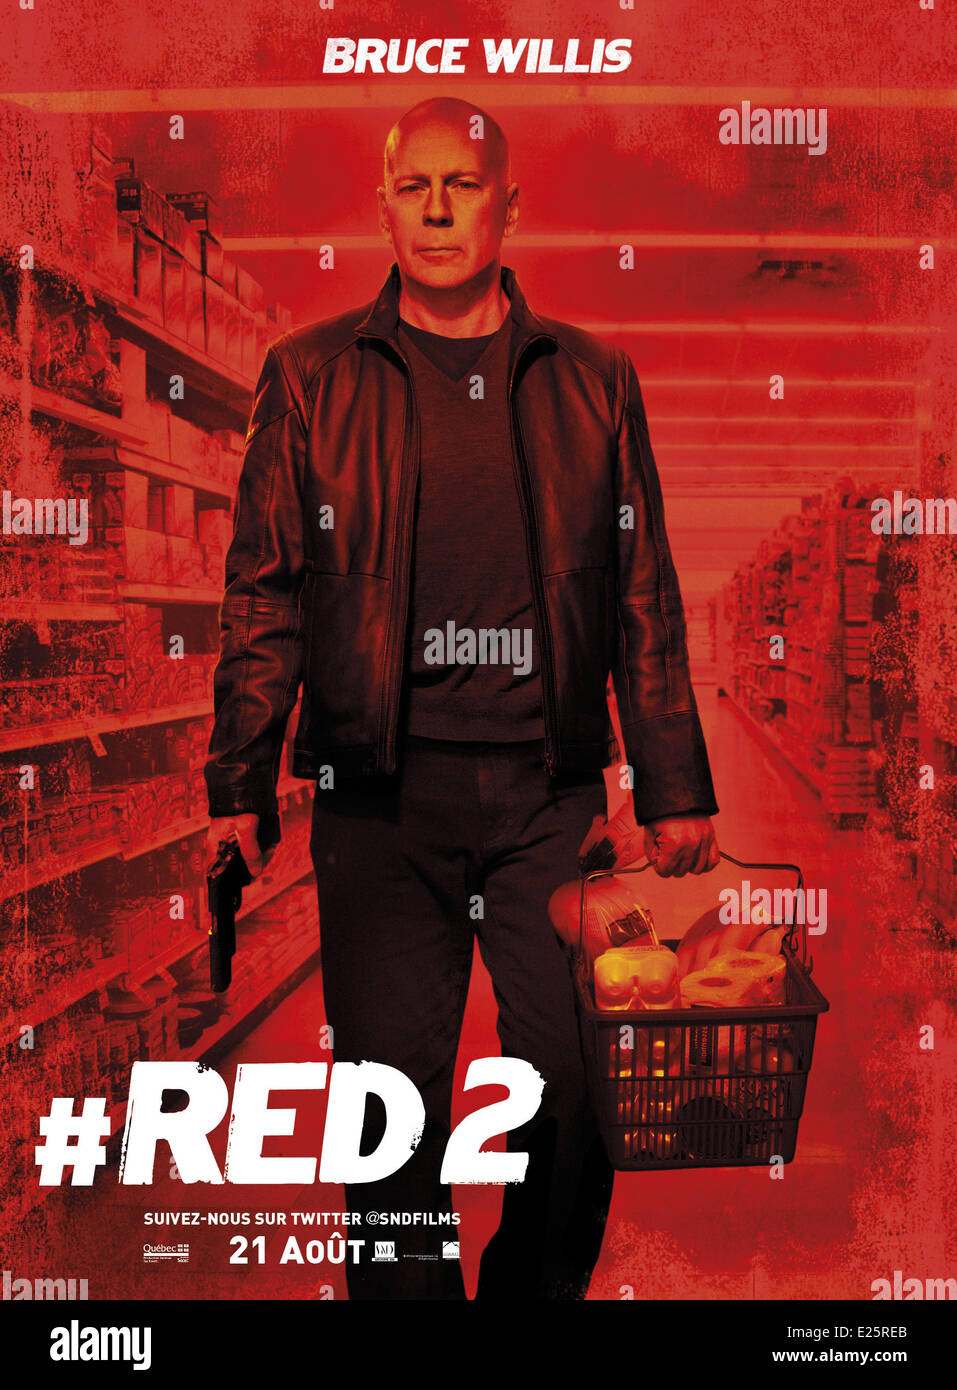 Movie stills for 'Red 2', 2013, directed by Dean Parisot ...